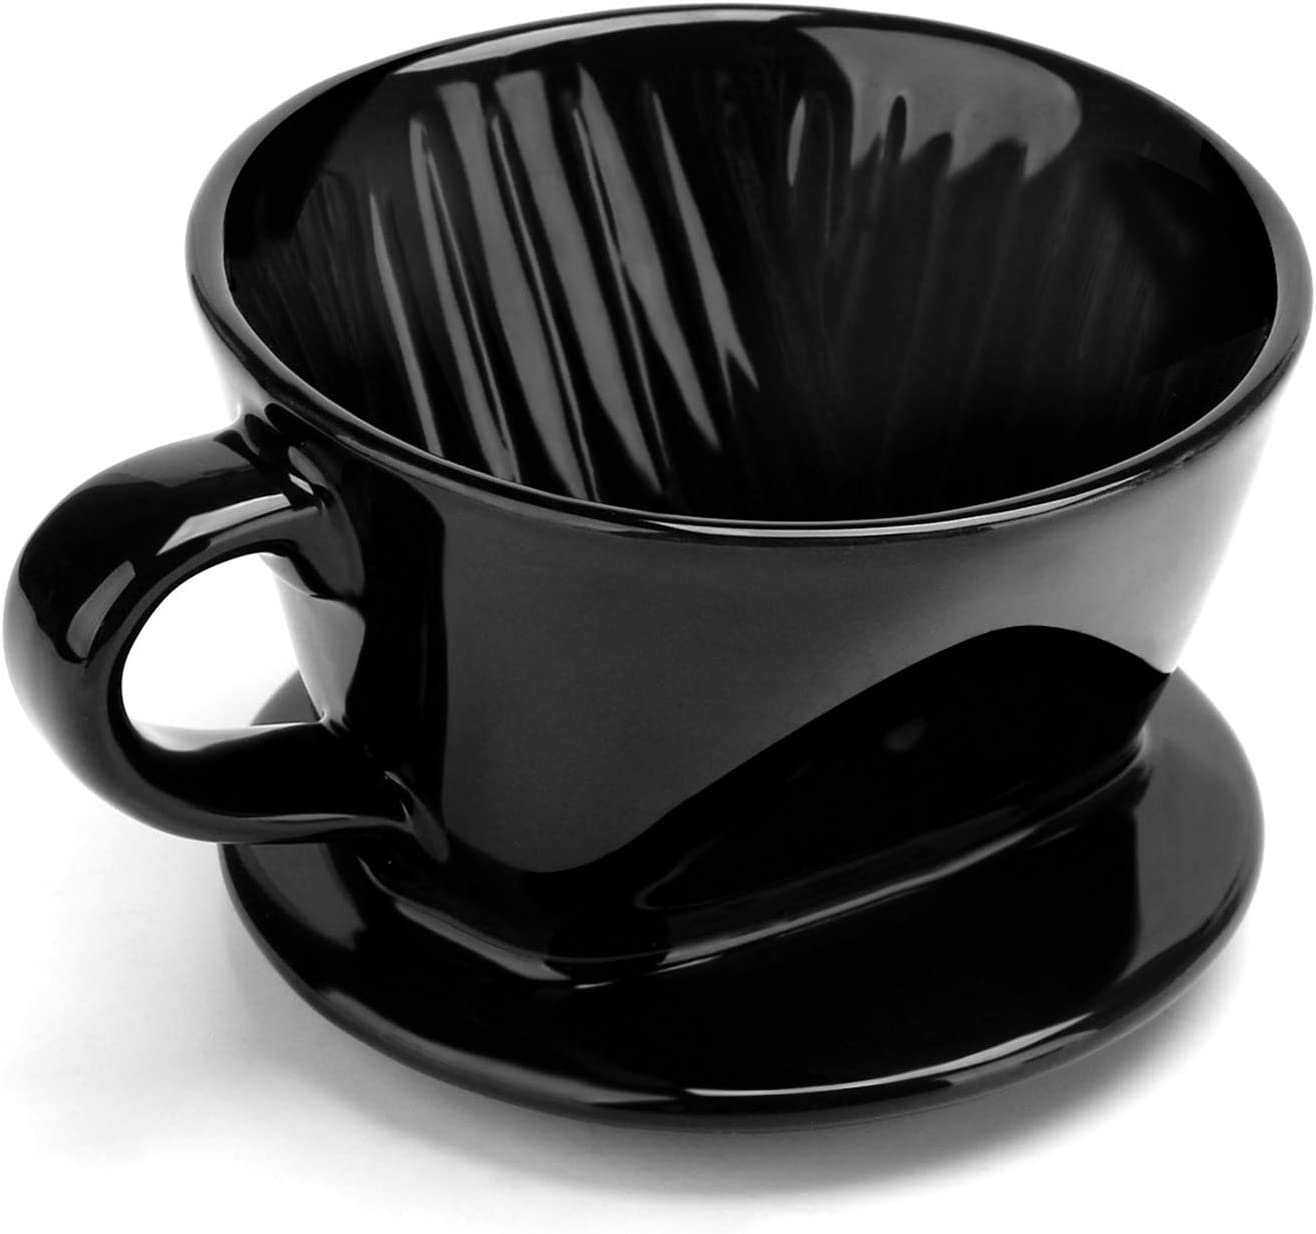 Ceramic Coffee Dripper Filter, Segarty #2 Pour Over Coffee Filter Cup with Grooved Inner for Brewing, 1-4 Cup for Home & Office Used, Portable for Coffee Enthusiast & At-home Baristas, Black